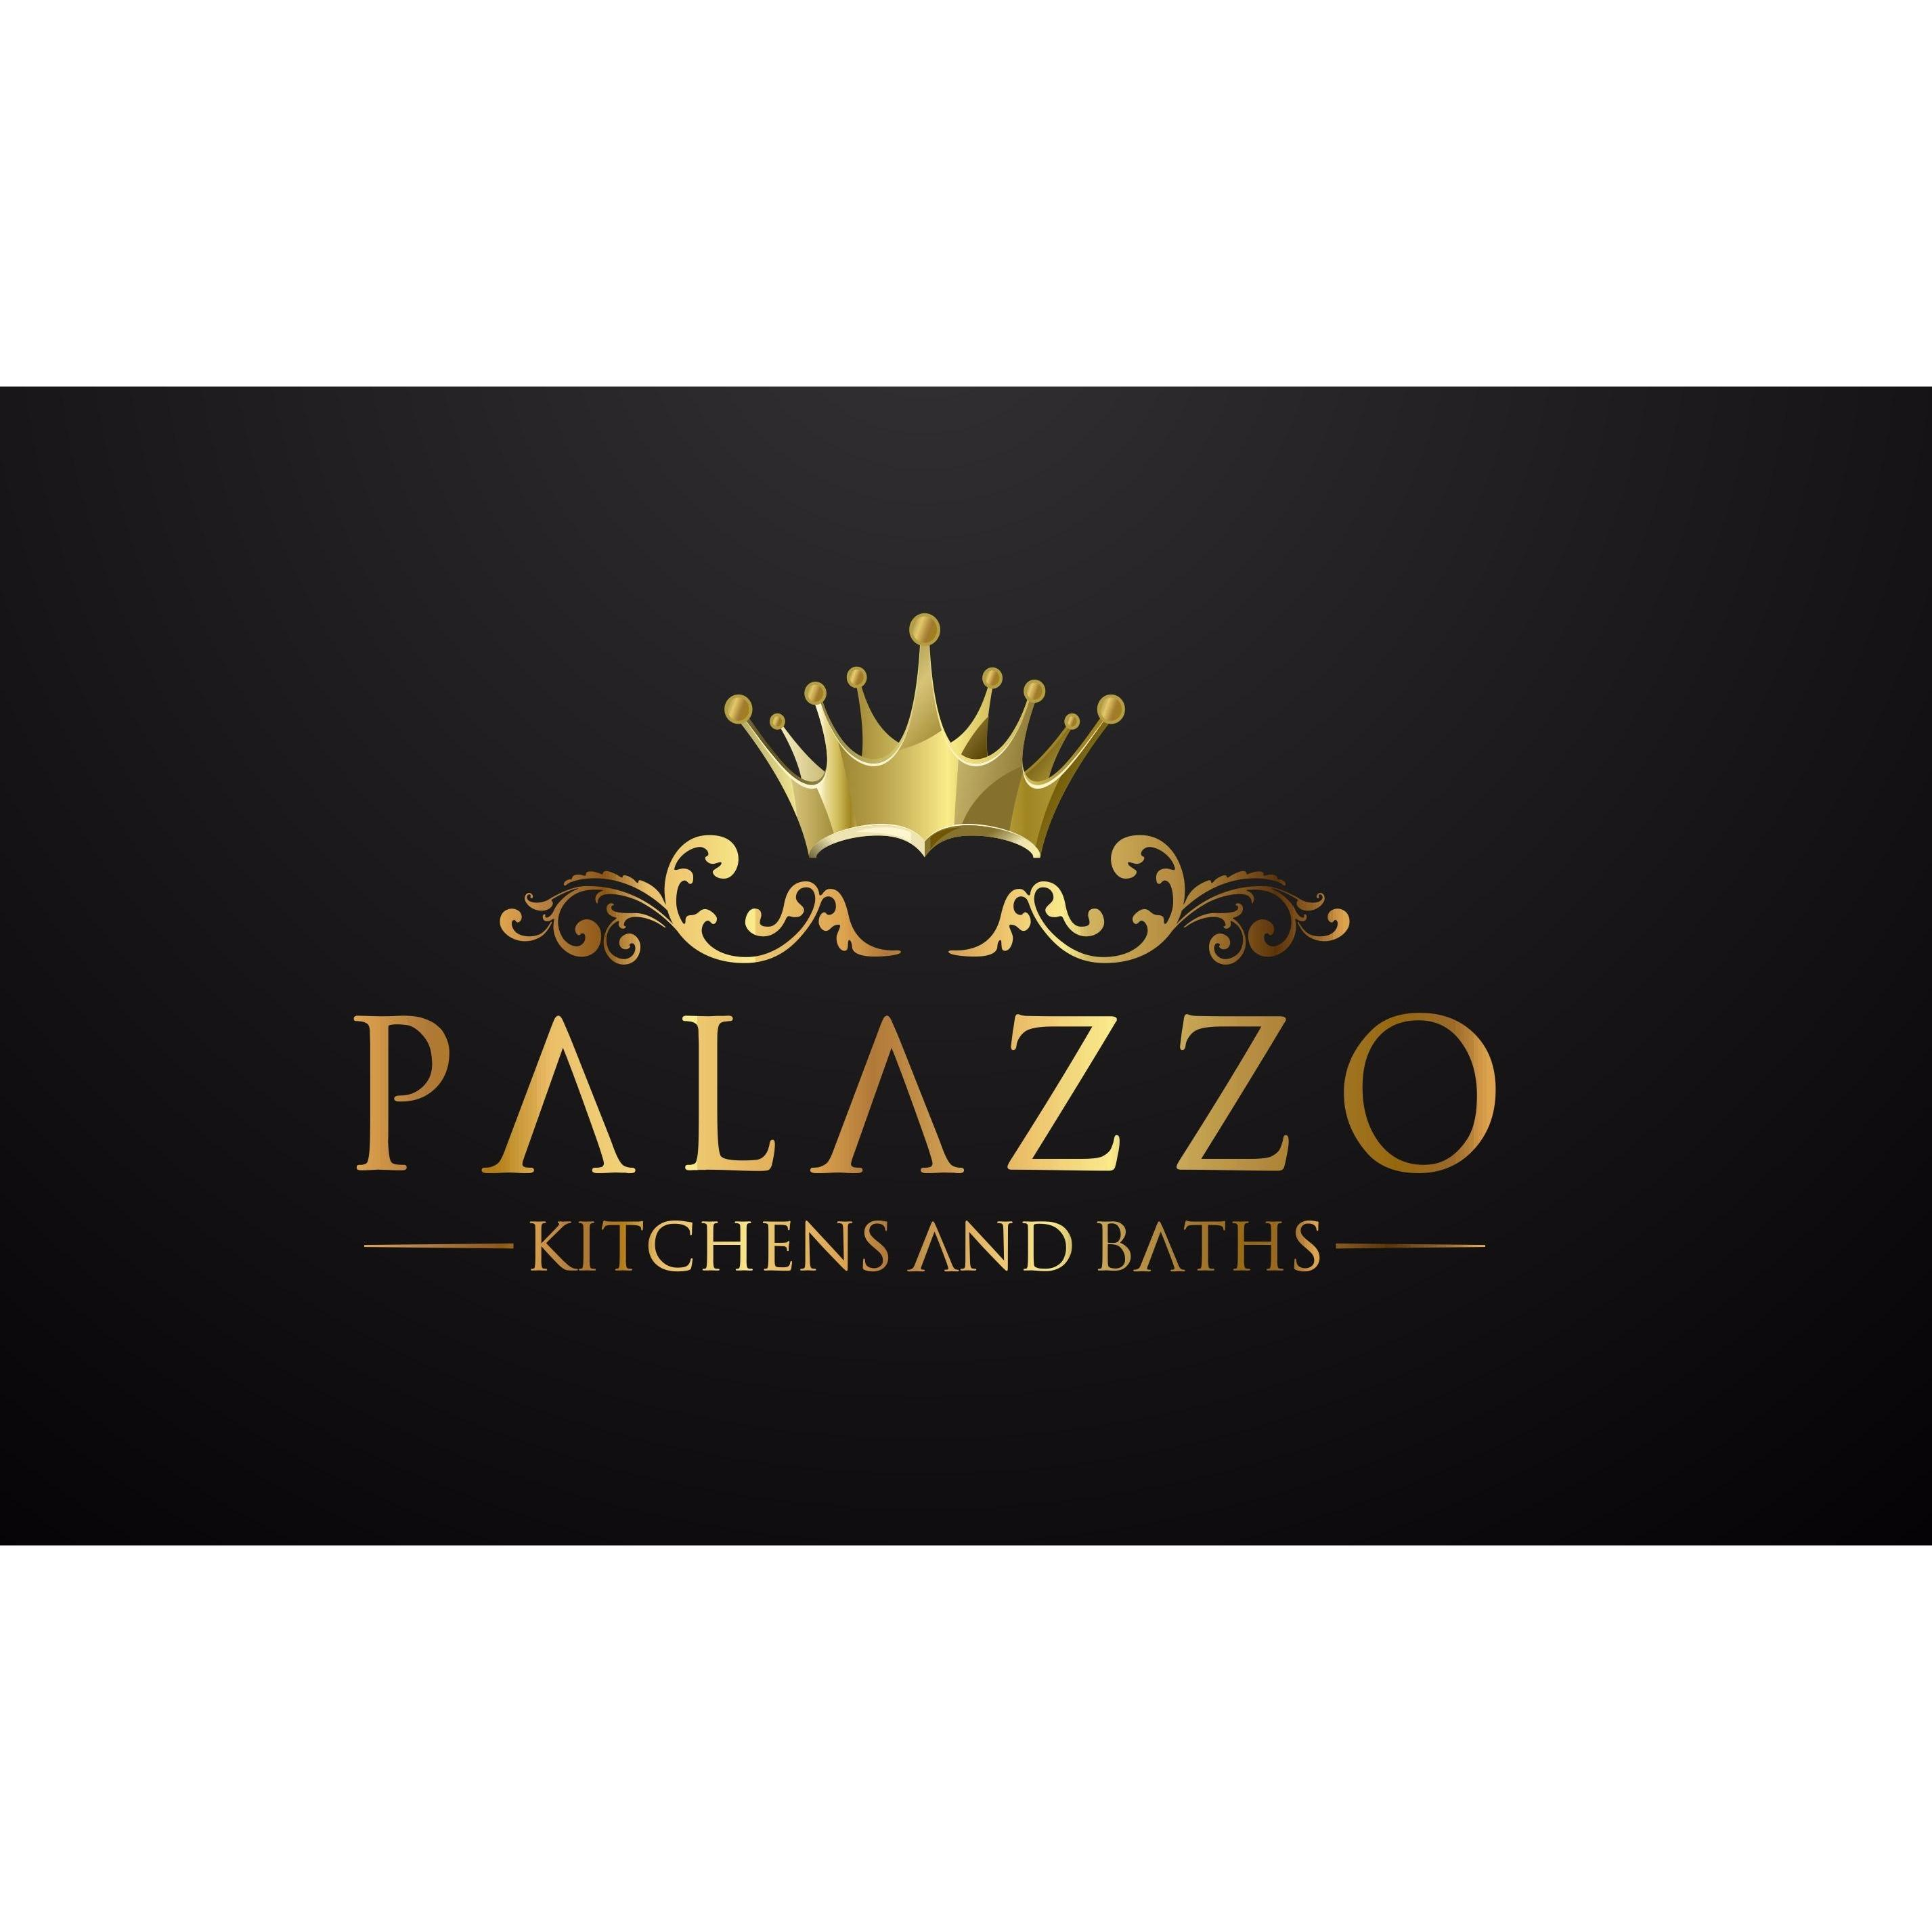 Palazzo Kitchens & Baths